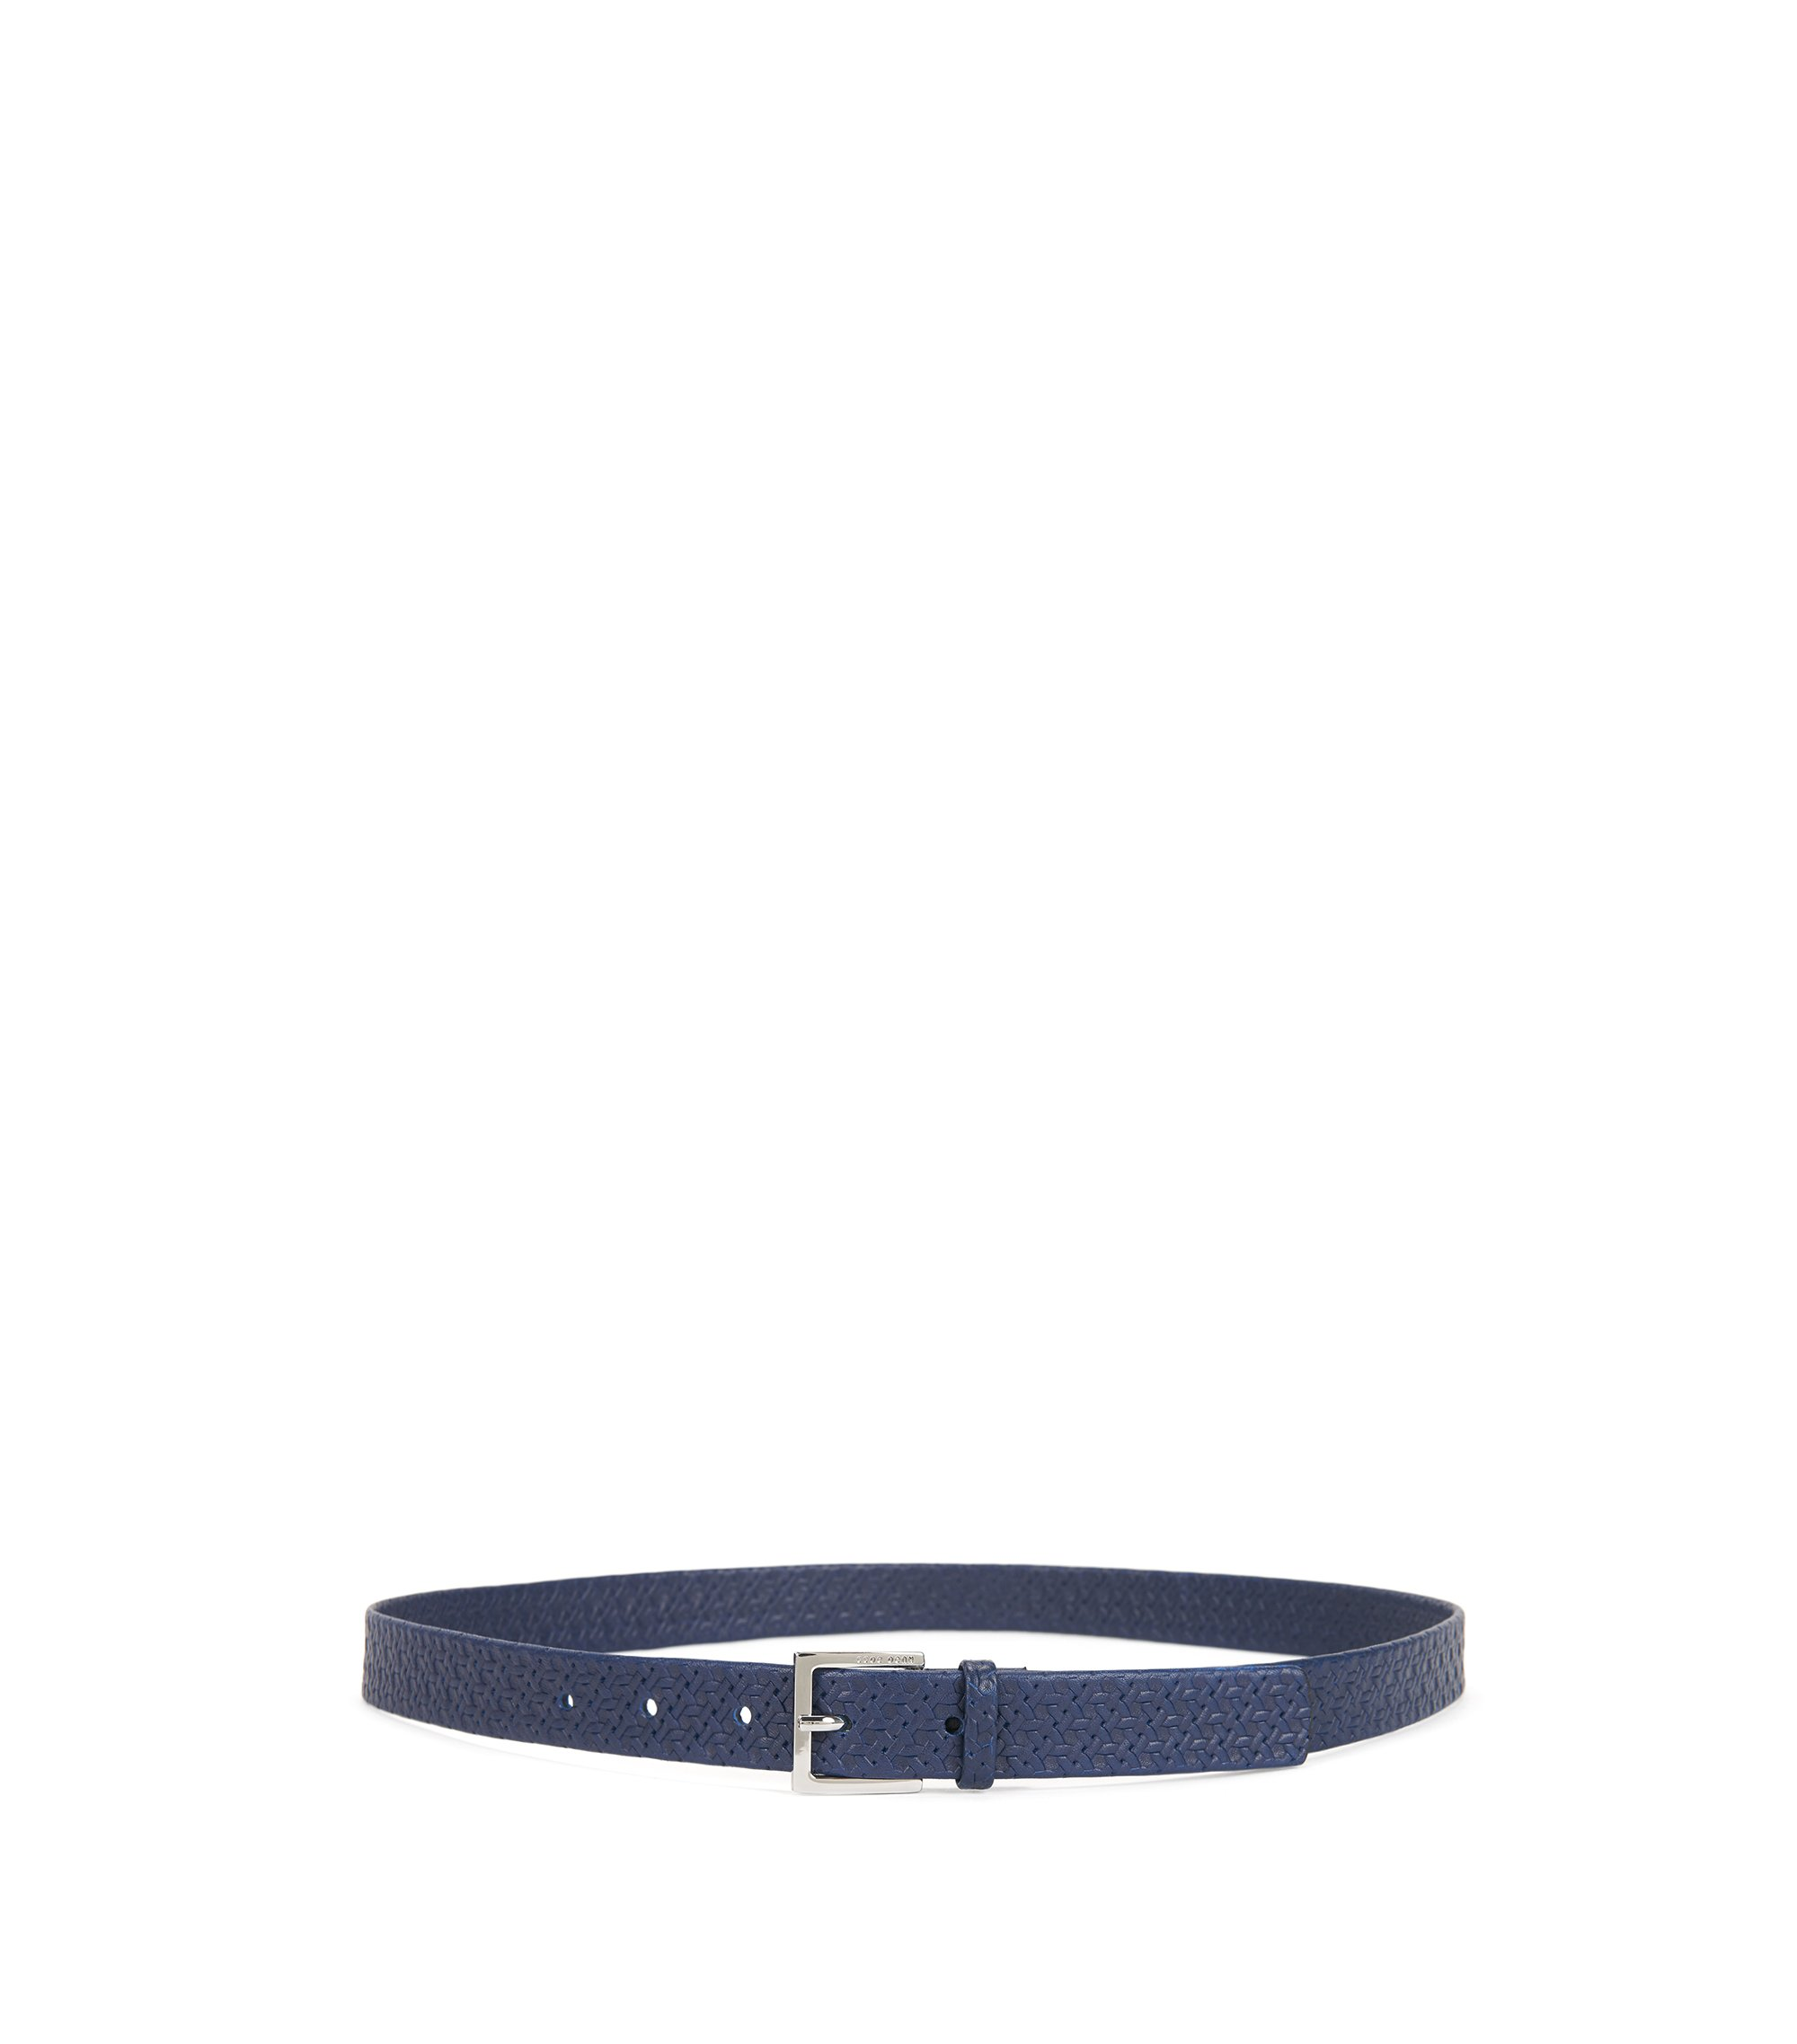 Italian-leather belt with printed woven effect, Blue